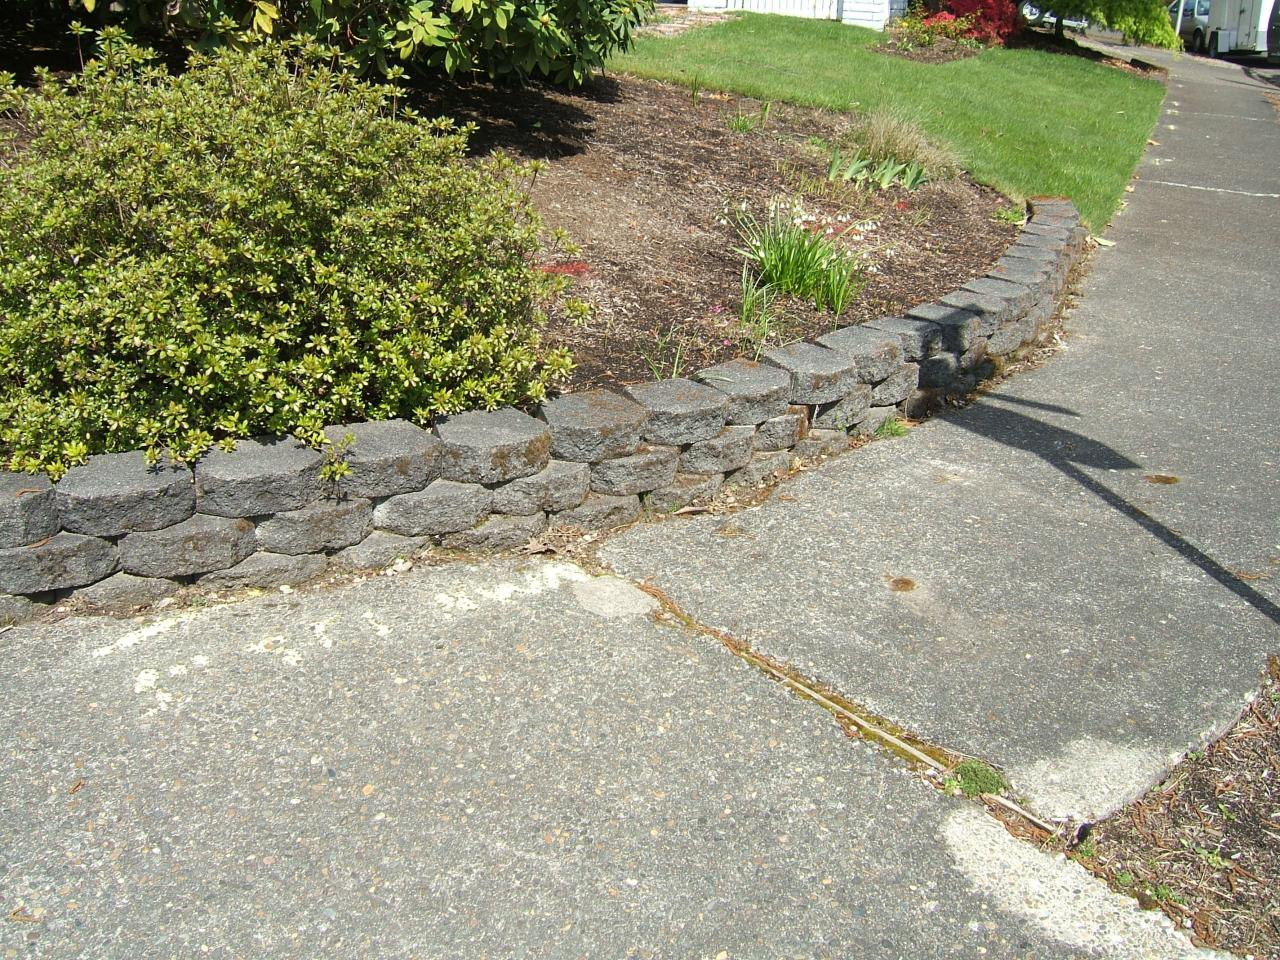 Danny S Green Surface Cleaning Llc Retaining Walls